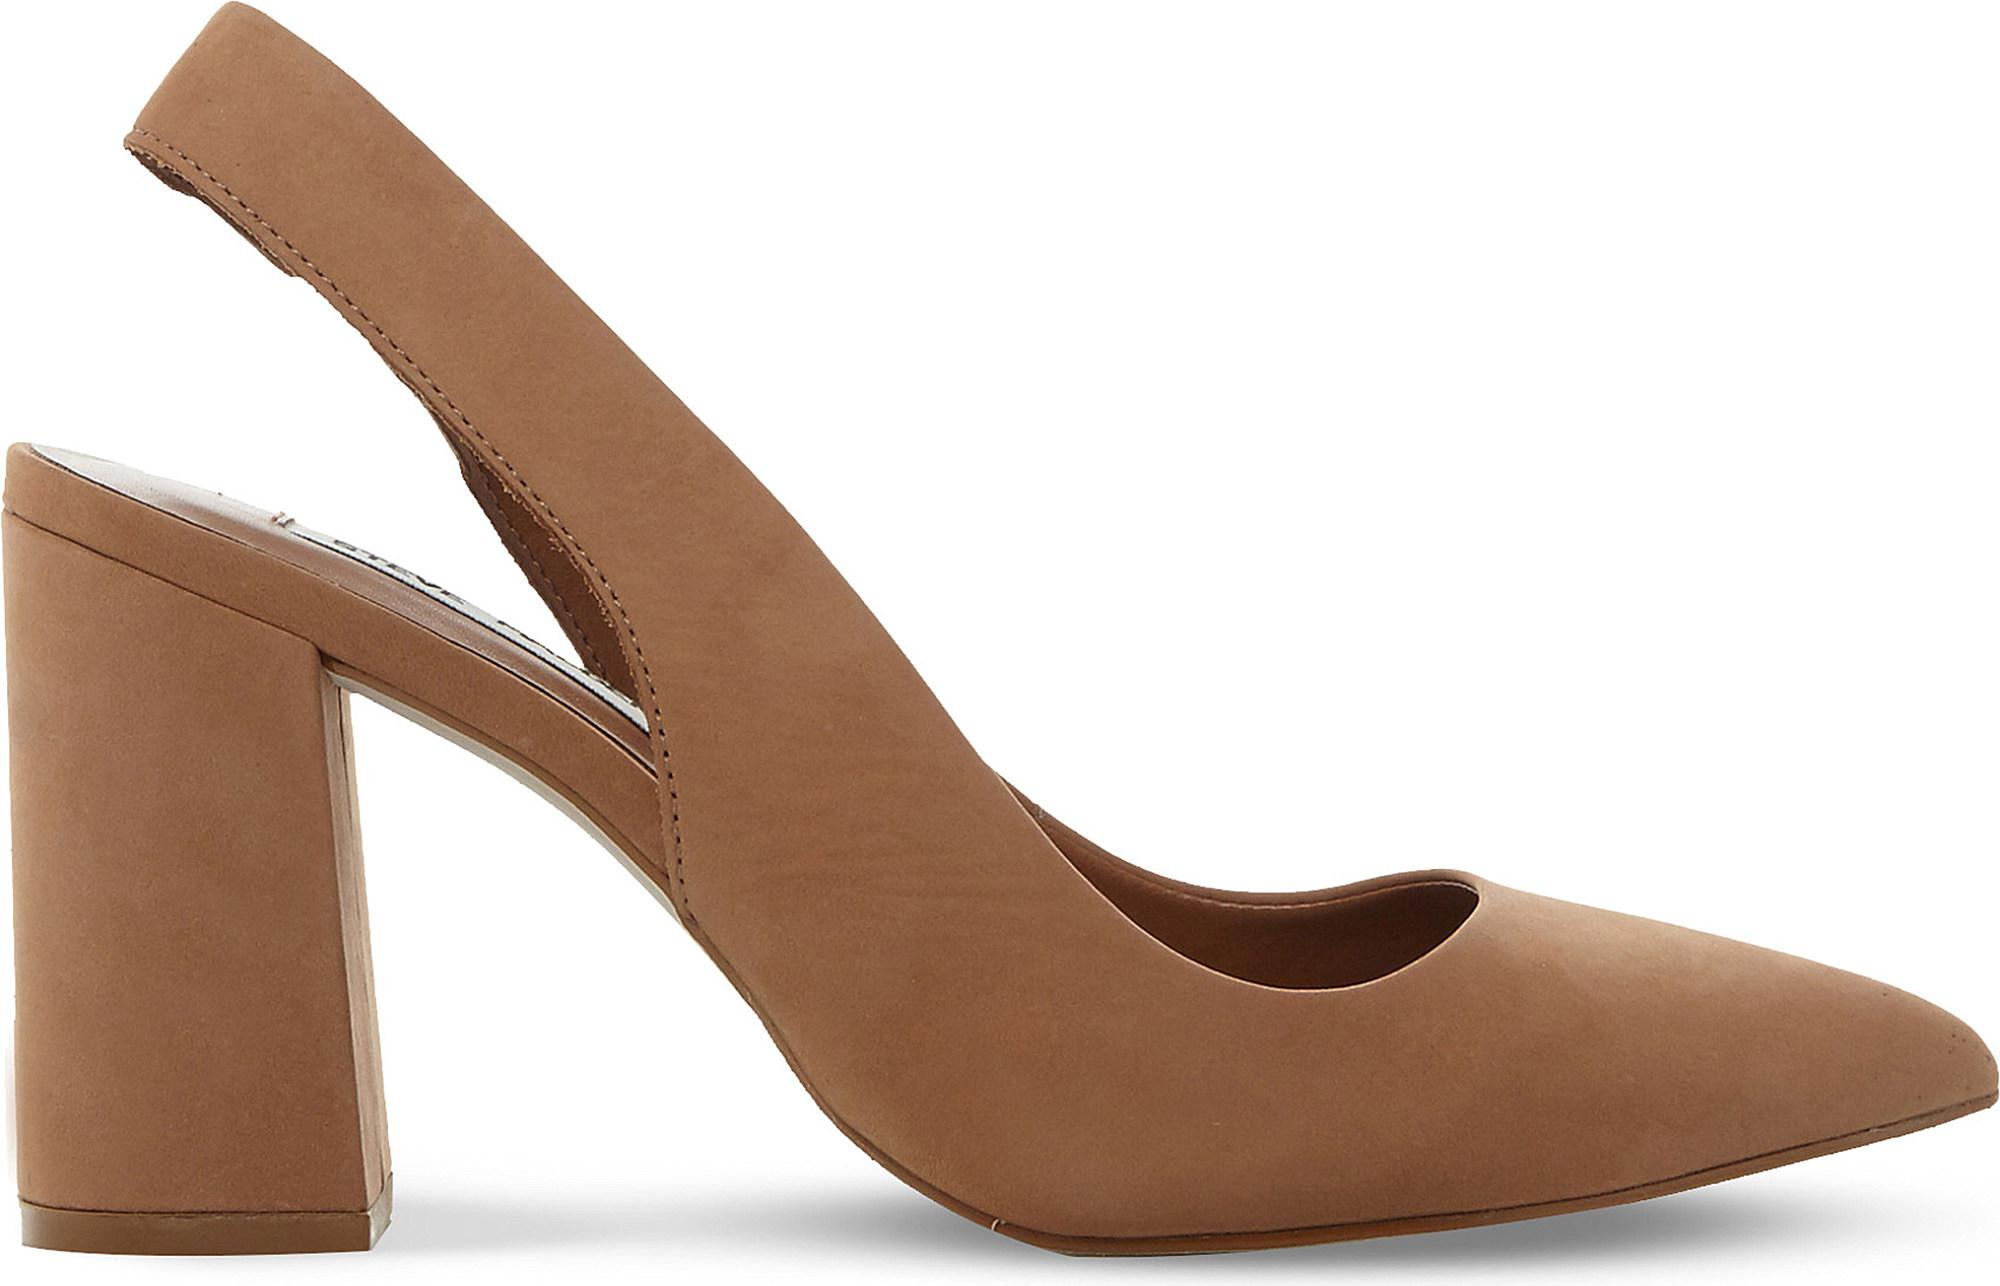 f540d4f7a8d0 Steve Madden Dove Nubuck Slingback Courts in Brown - Lyst